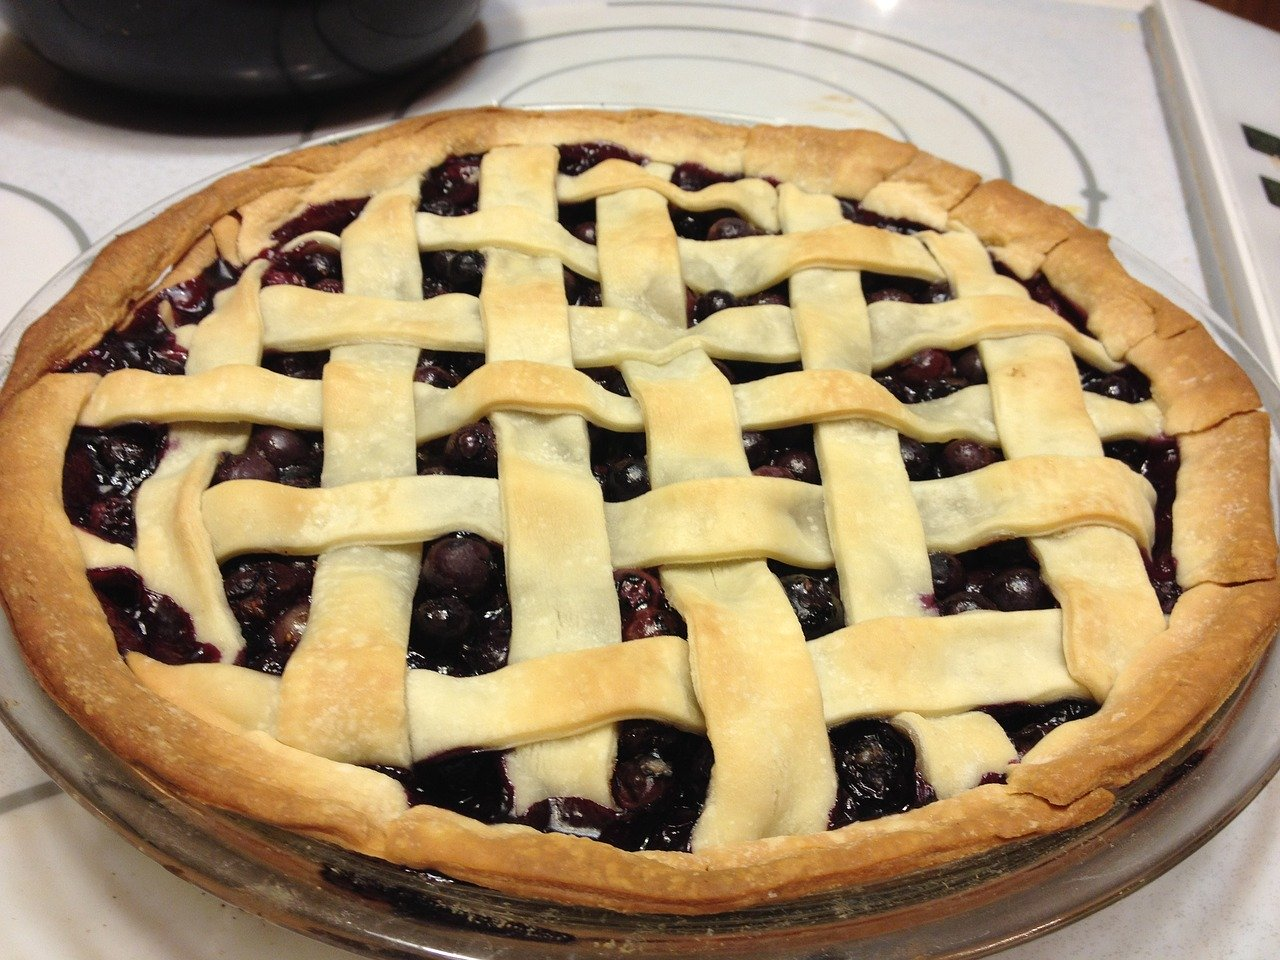 Blueberry Pie with Homemade Vanilla Sauce